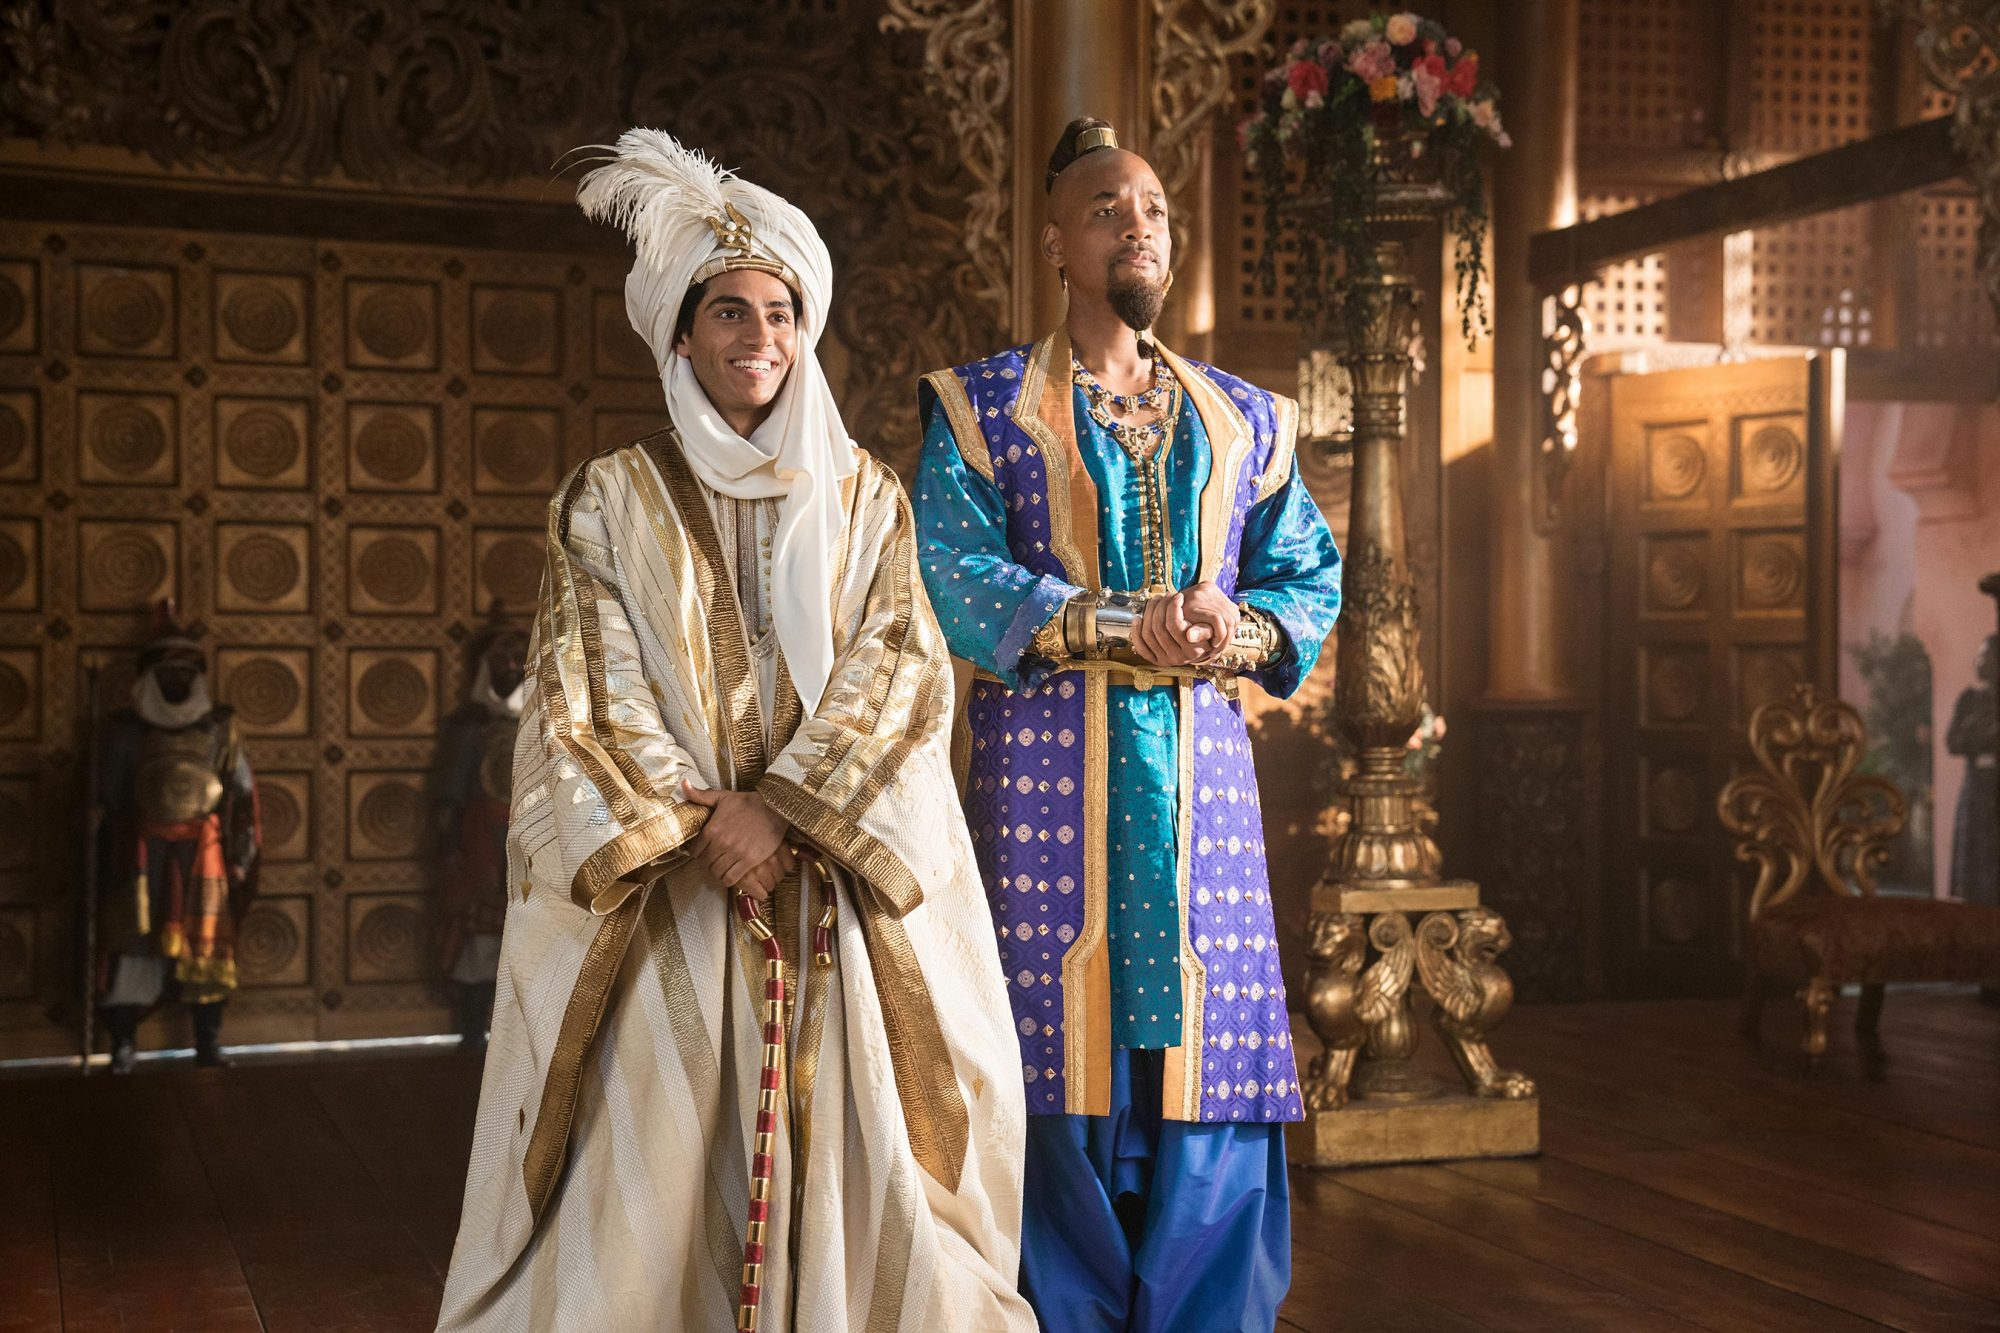 Mena Massoud is Aladdin and Will Smith is the Genie in Disney's live-action ALADDIN, directed by Guy Ritchie.